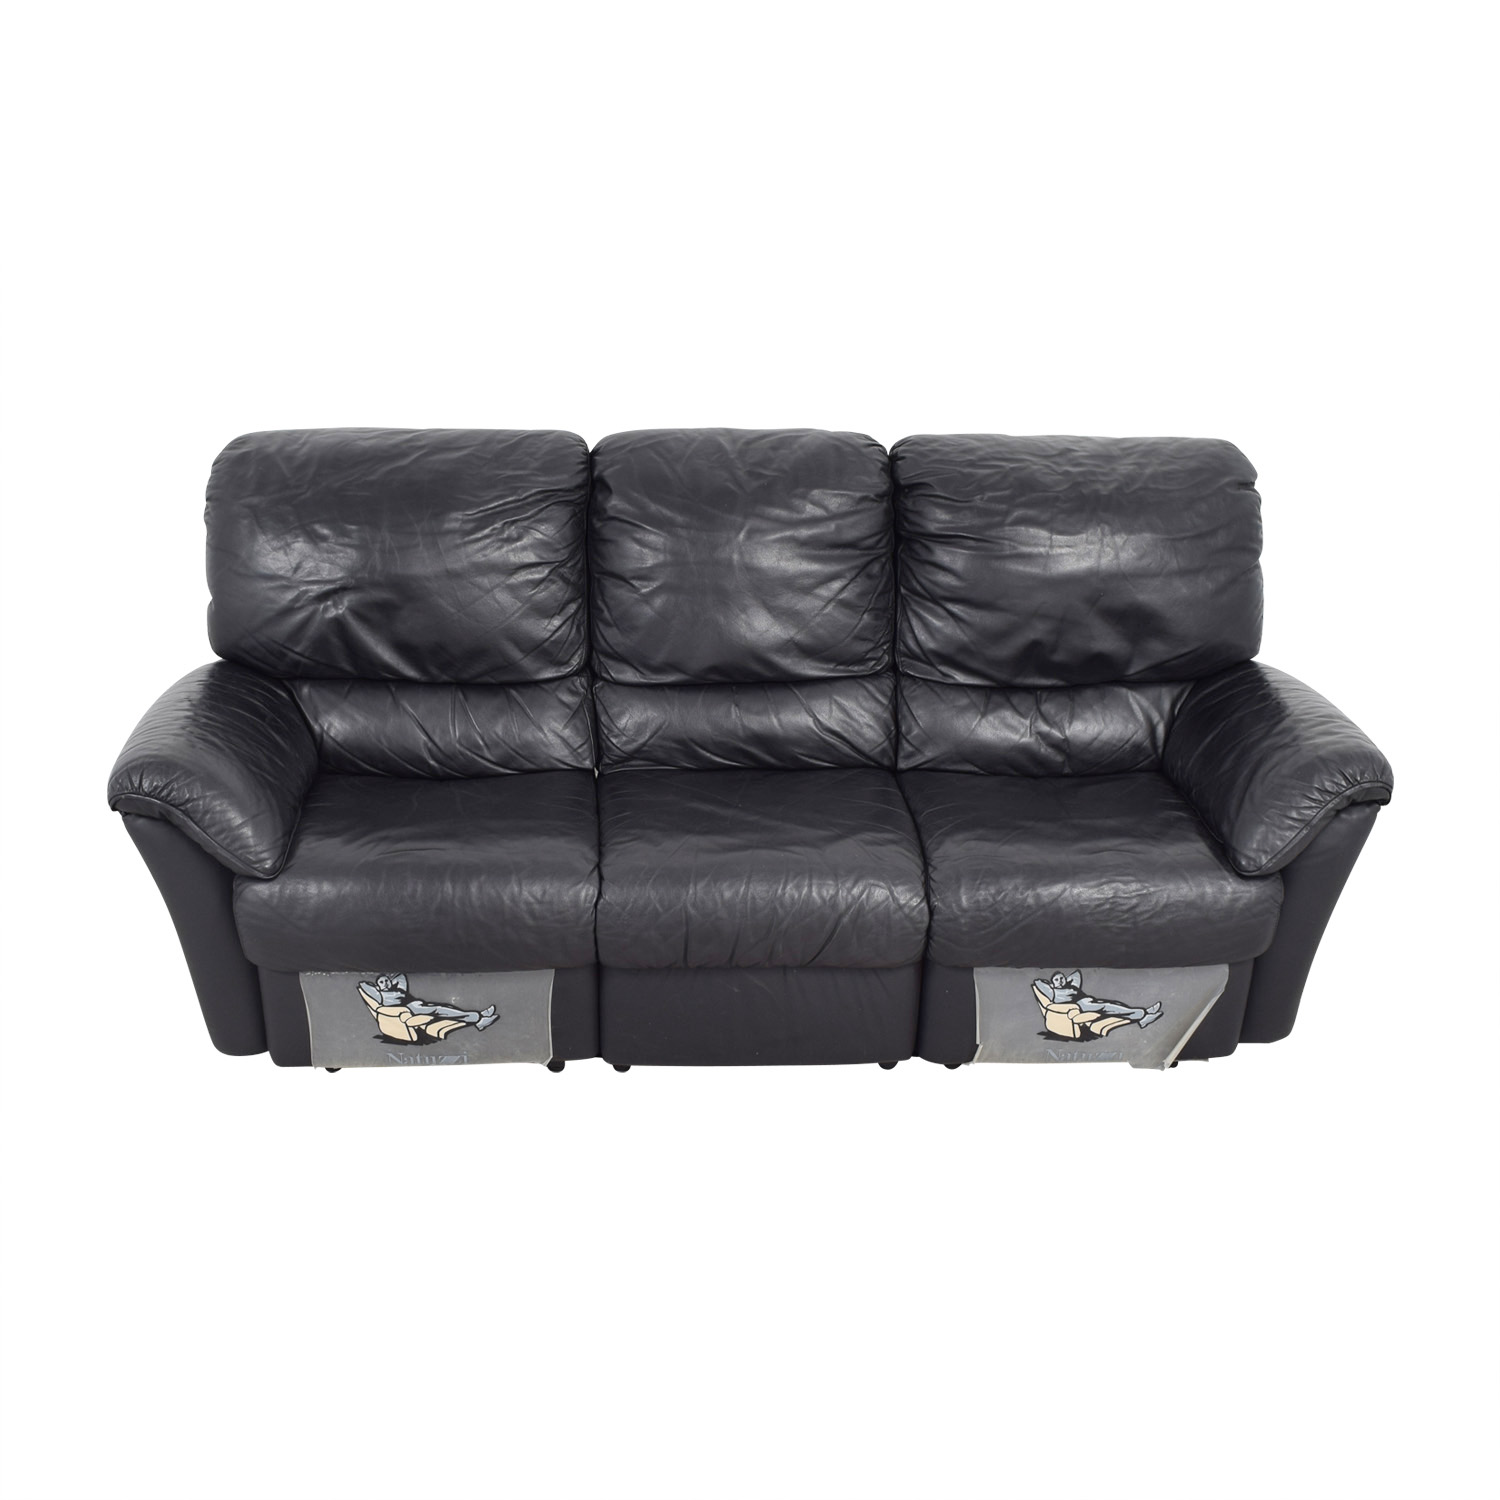 Buy Recliner Used Furniture On Sale